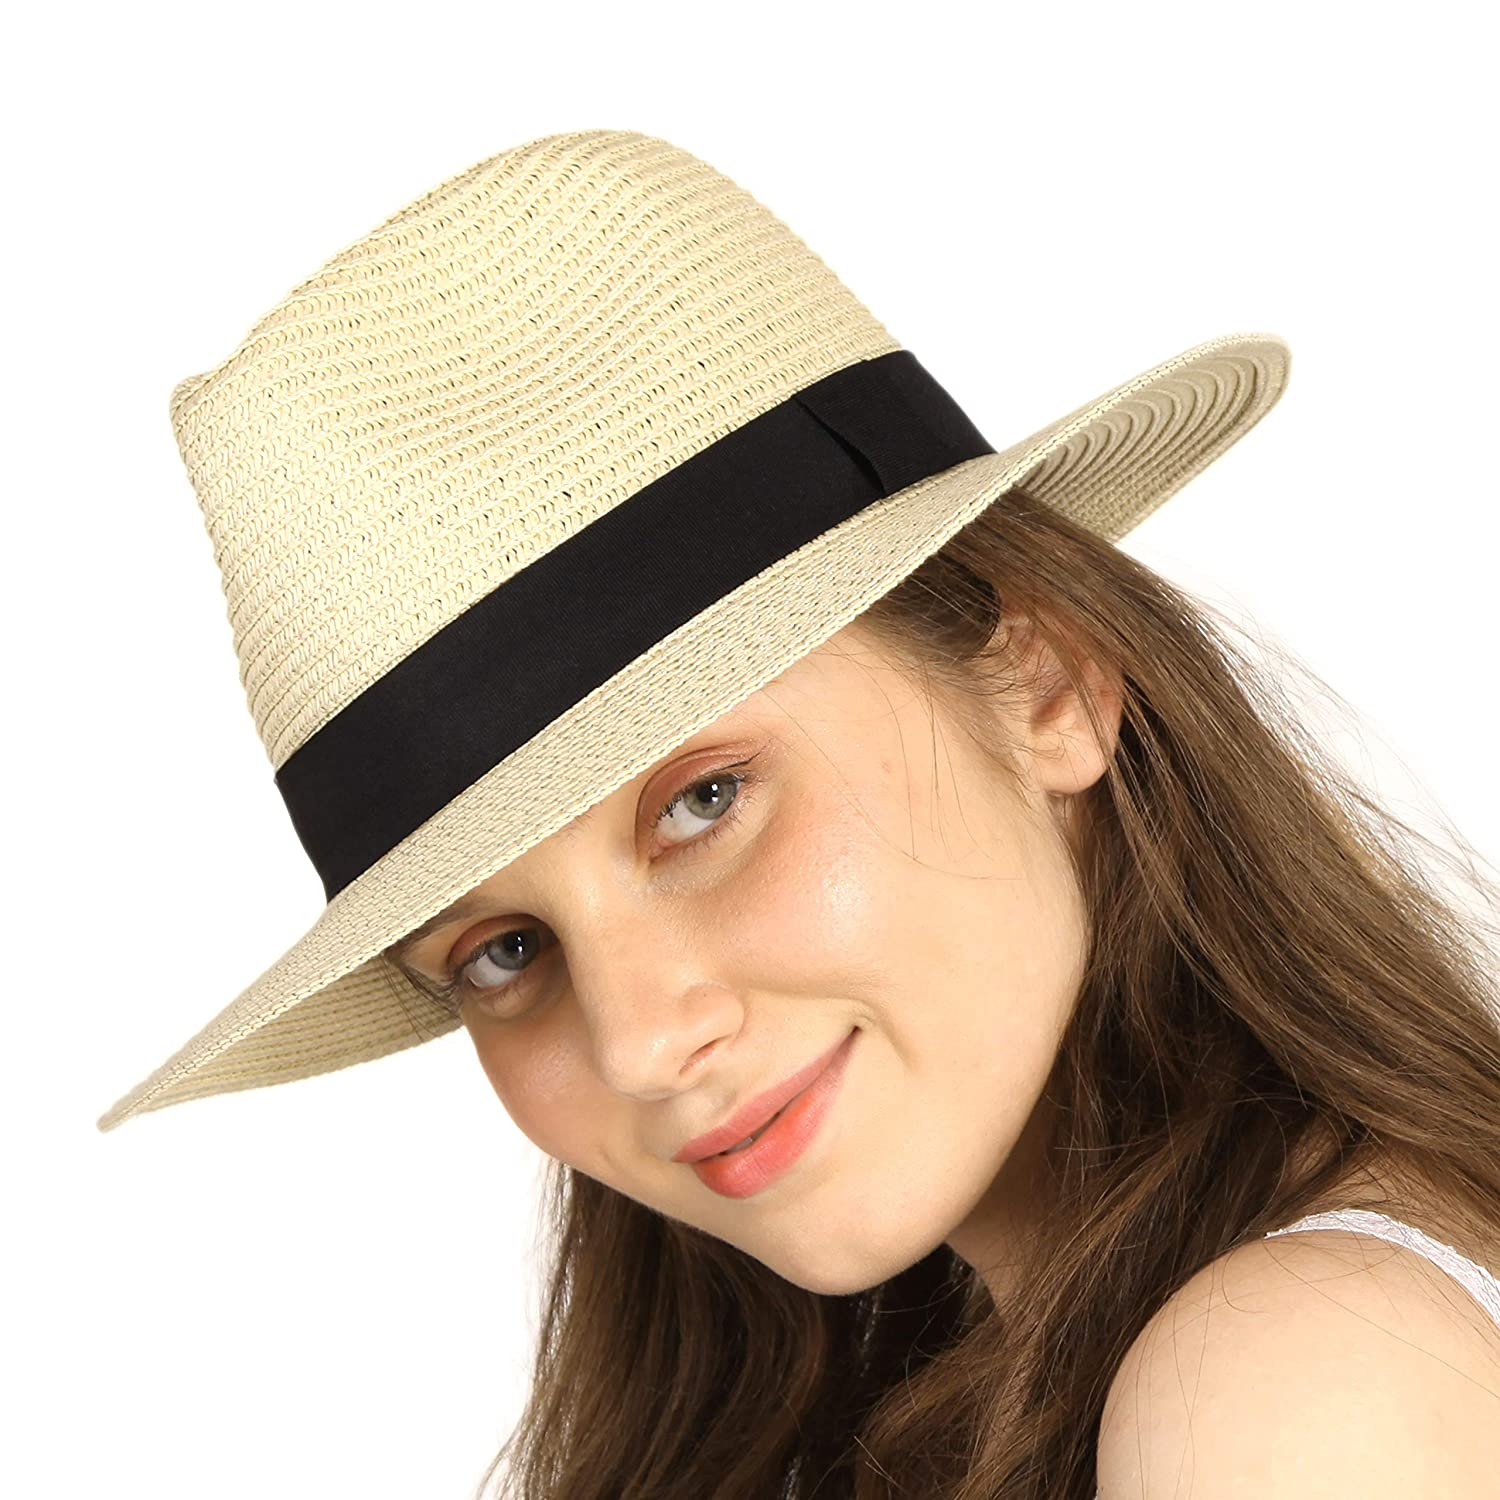 9fdf5c8f7 Straw Hats for Women Men Panama Hat Wide Brim UV Protection Roll Up UPF50+  Beach Fedora Sun Hat Packable